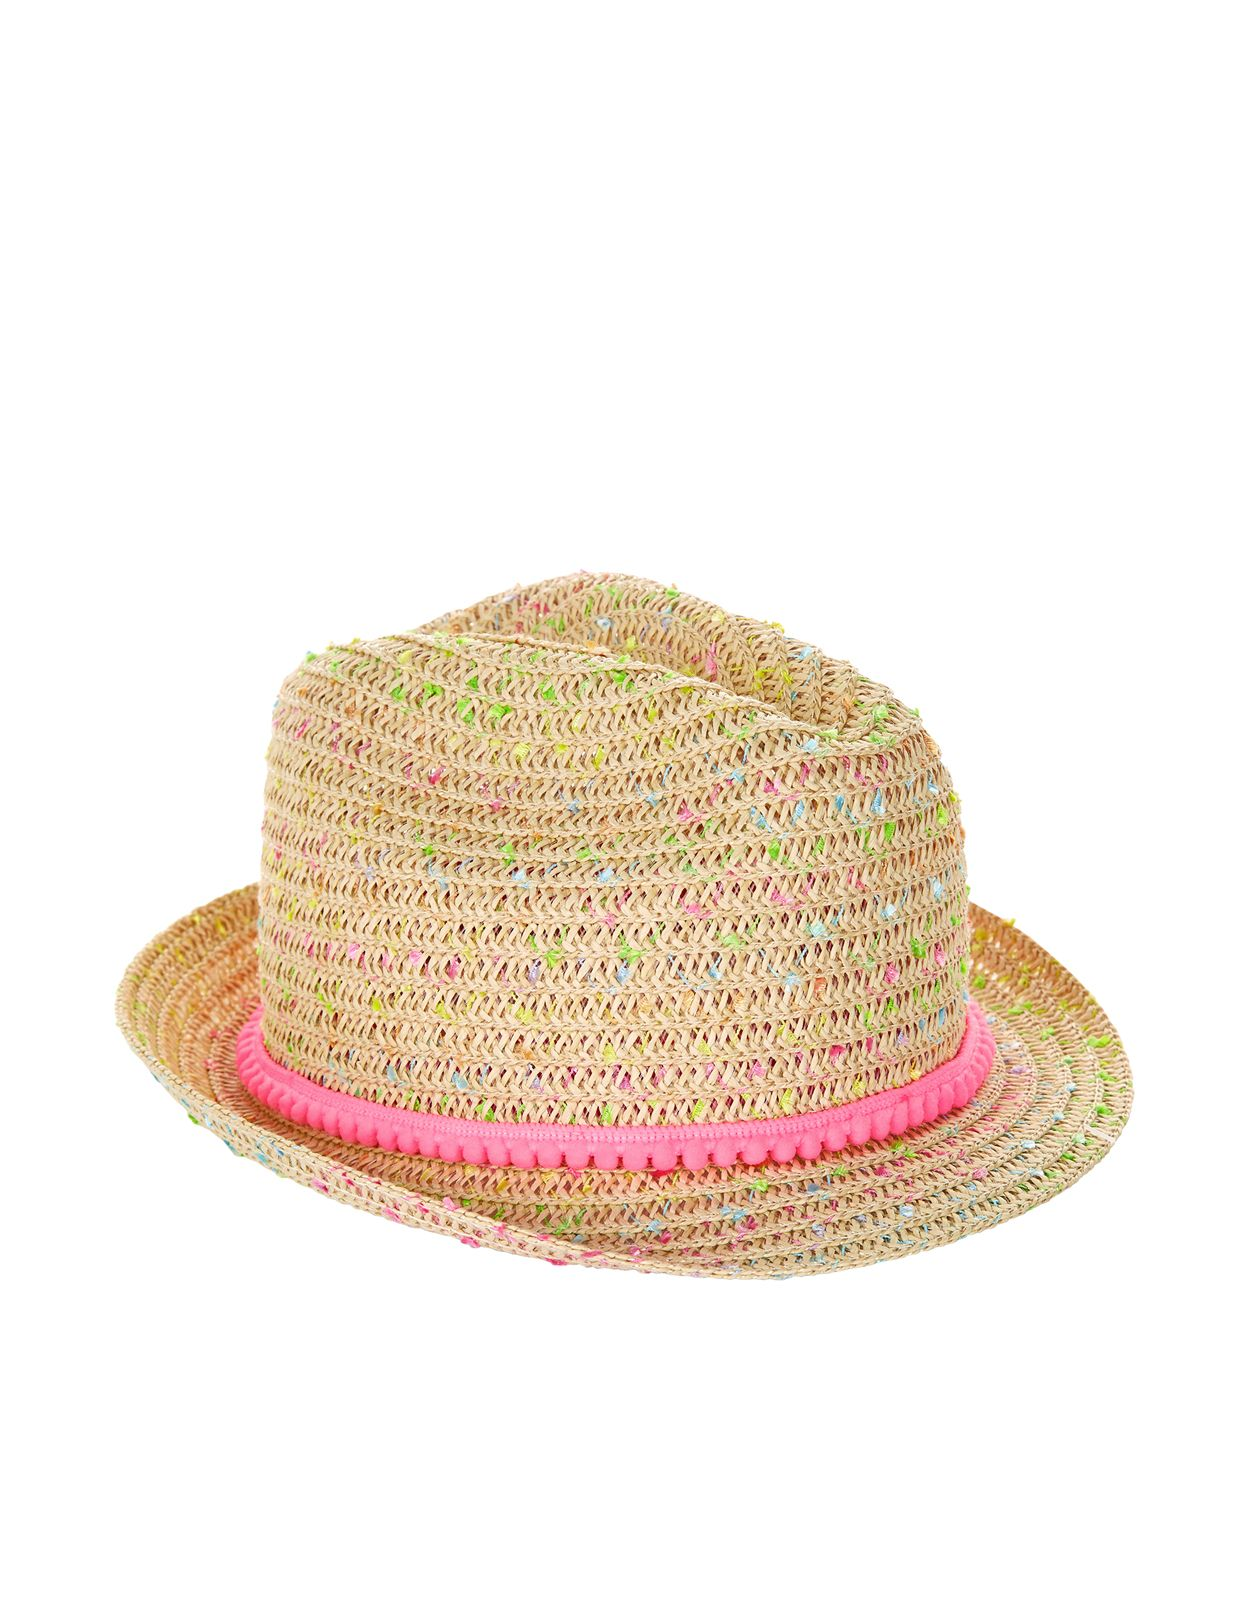 276da8bc Accessorize | Sherbet Speckled Straw Hat | Multi | 3-6 Years | Girls ...